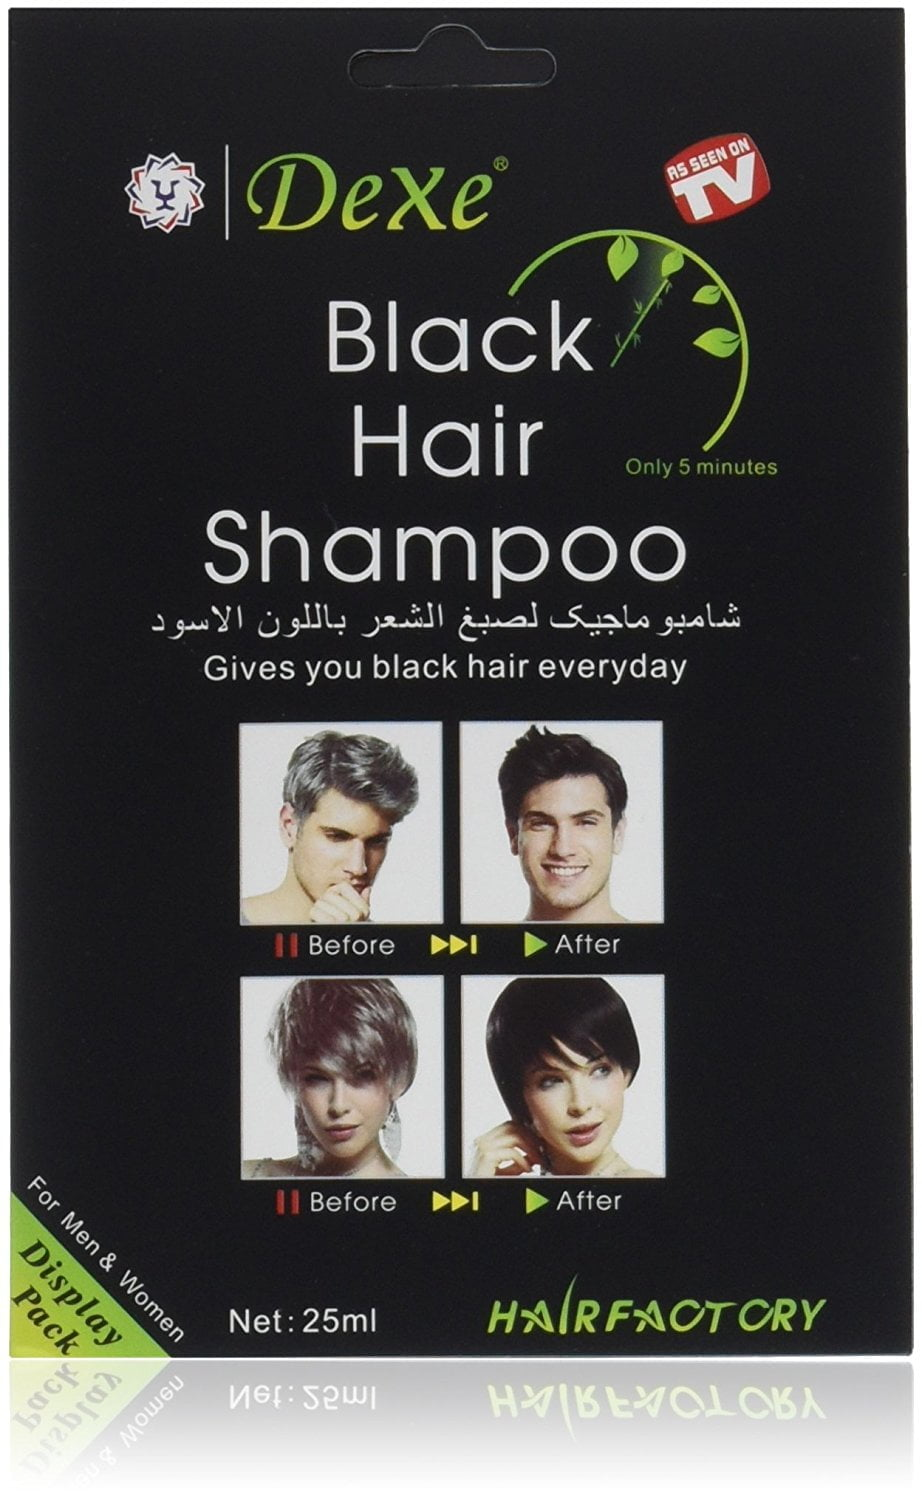 Dexe Black Hair Shampoo 25ml